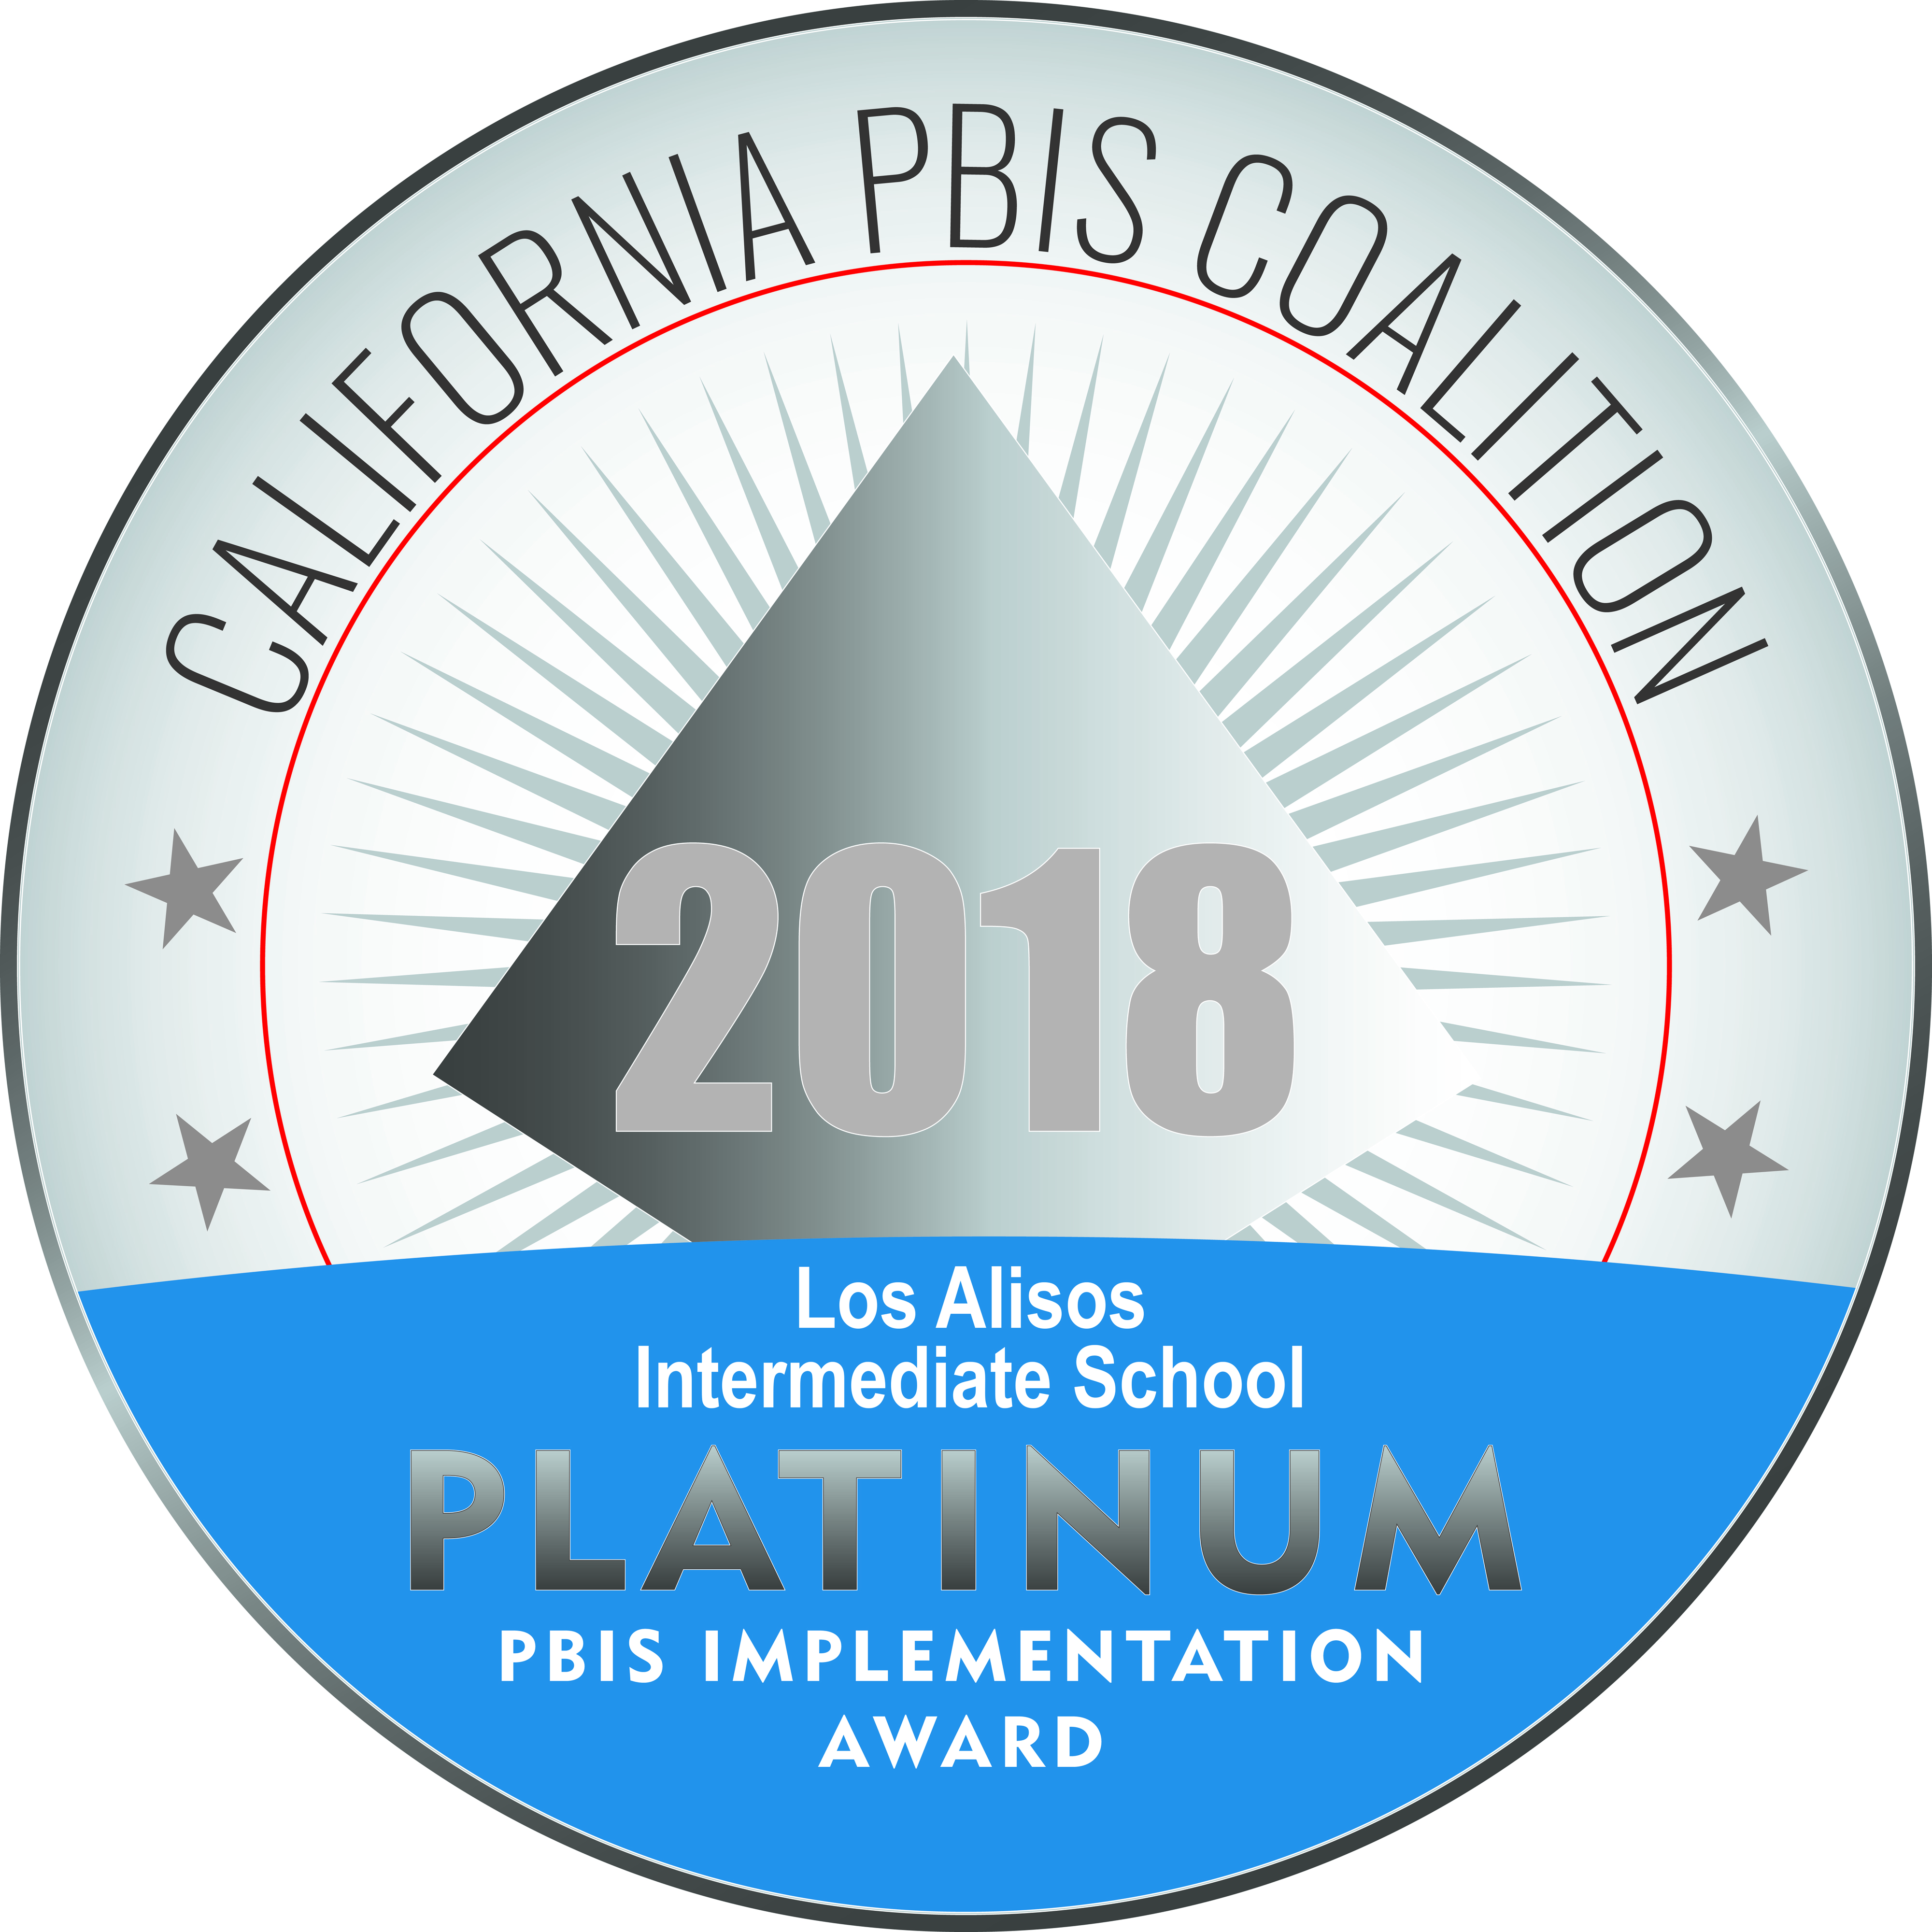 Platinum seal indicating PBIS Implementation Award